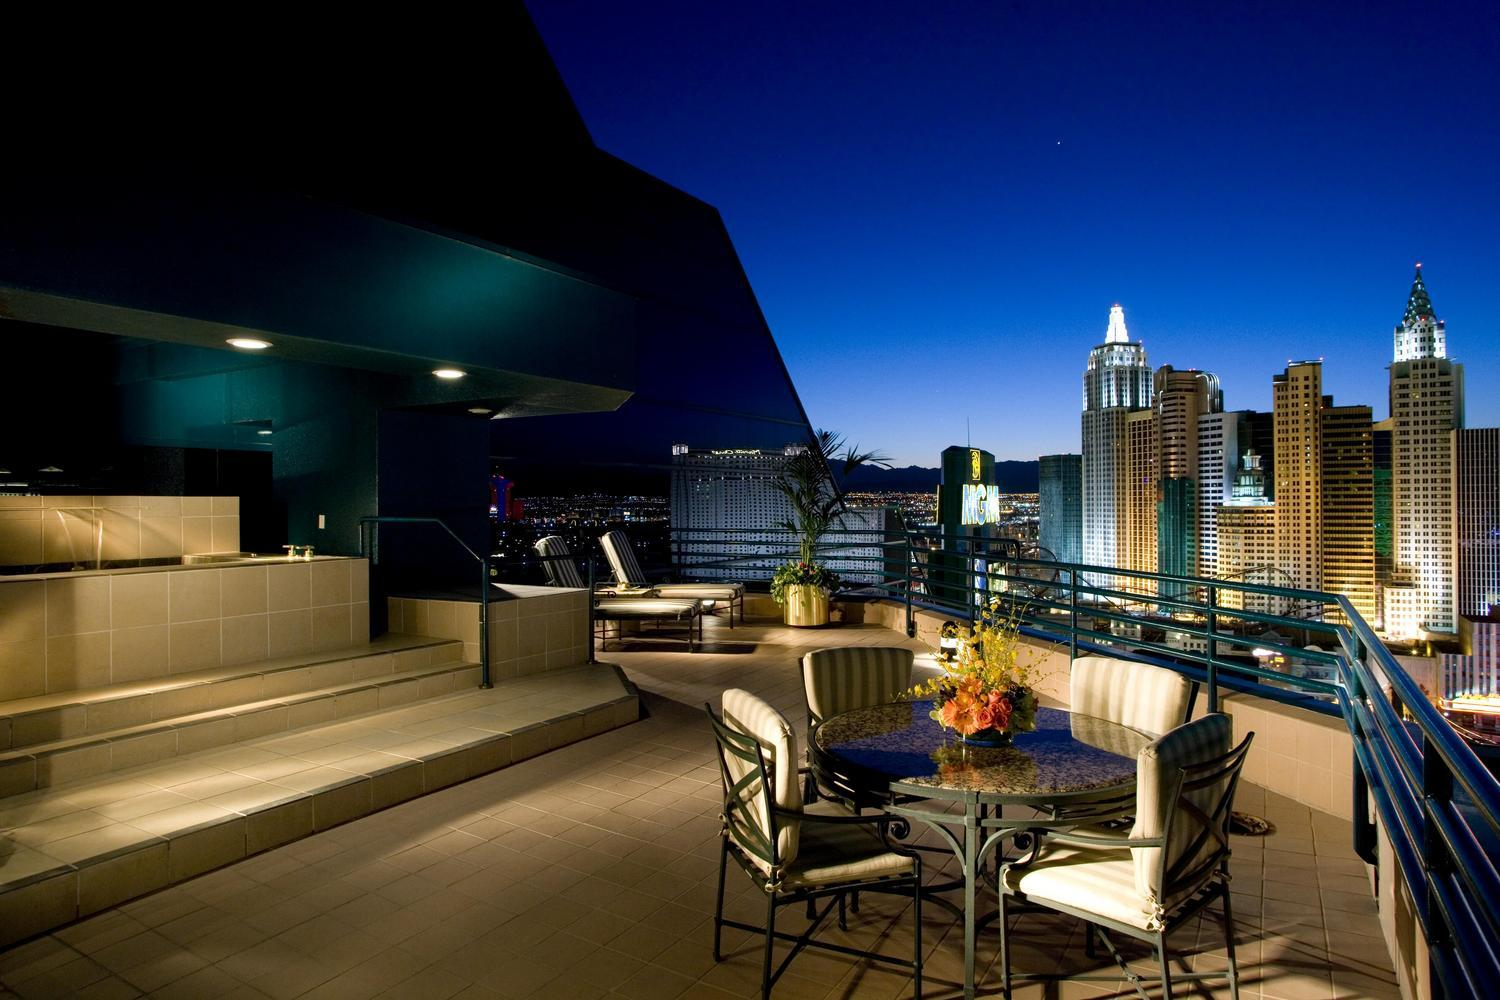 Las Vegas Most Hotel Rooms In The World